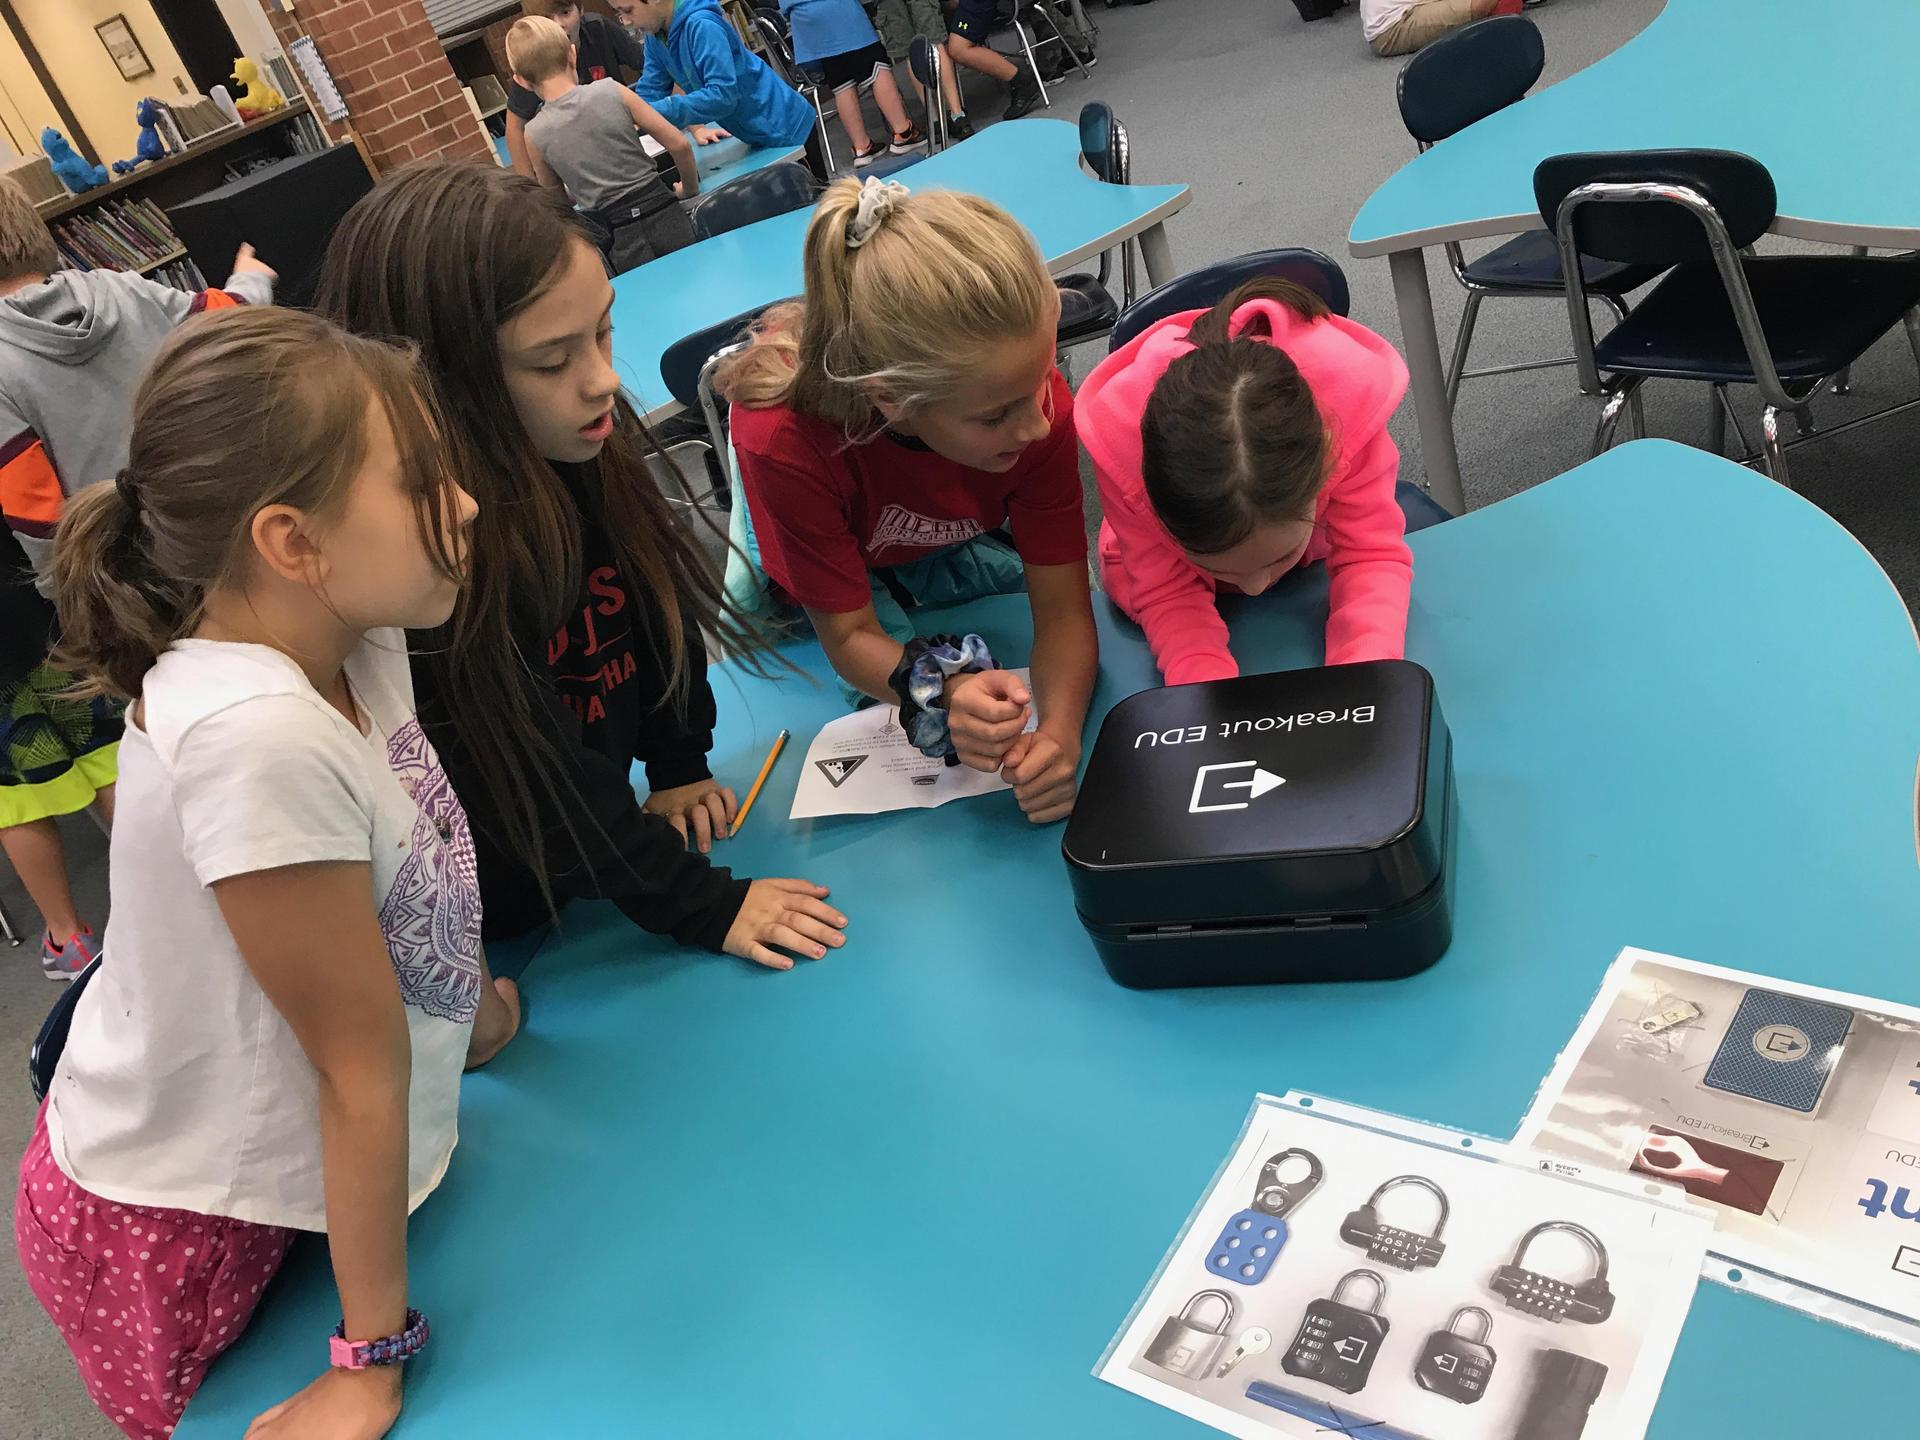 Image of students gathered around breakout boxes